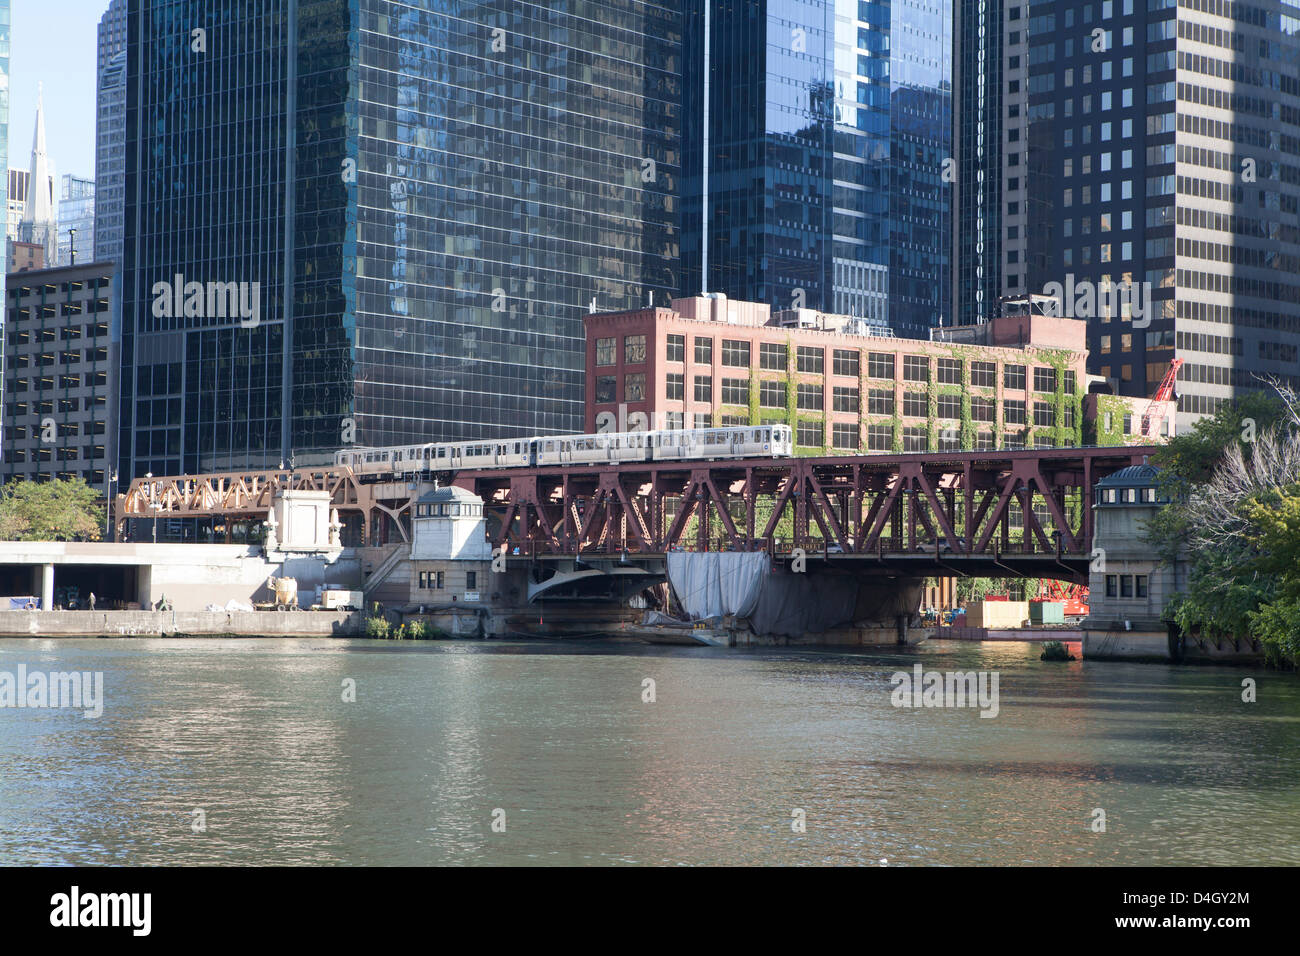 El train crossing Lake Street Bridge over the Chicago River, The Loop, Chicago, Illinois, USA - Stock Image